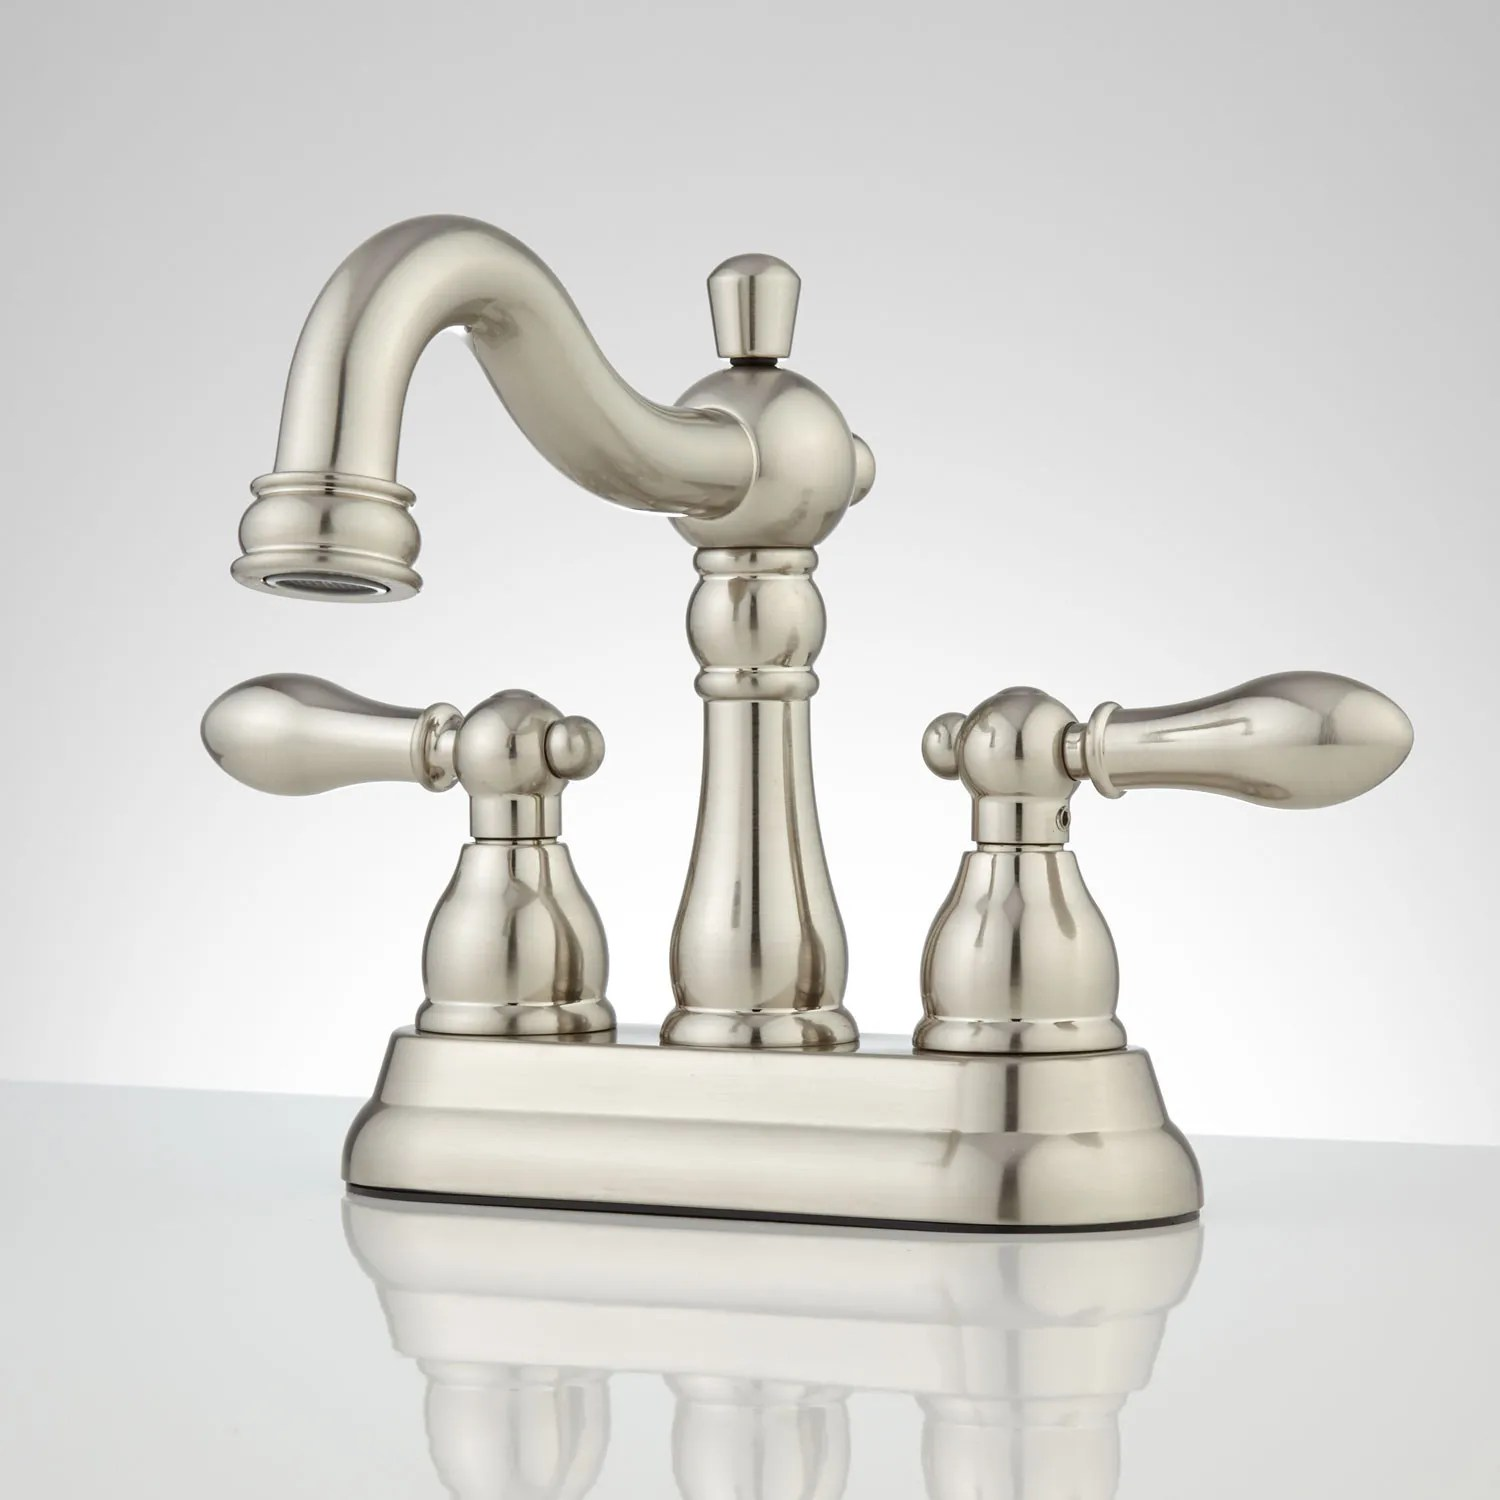 Menza Centerset Bathroom Faucet  4 Centerset Faucets  Bathroom Sink Faucets  Bathroom